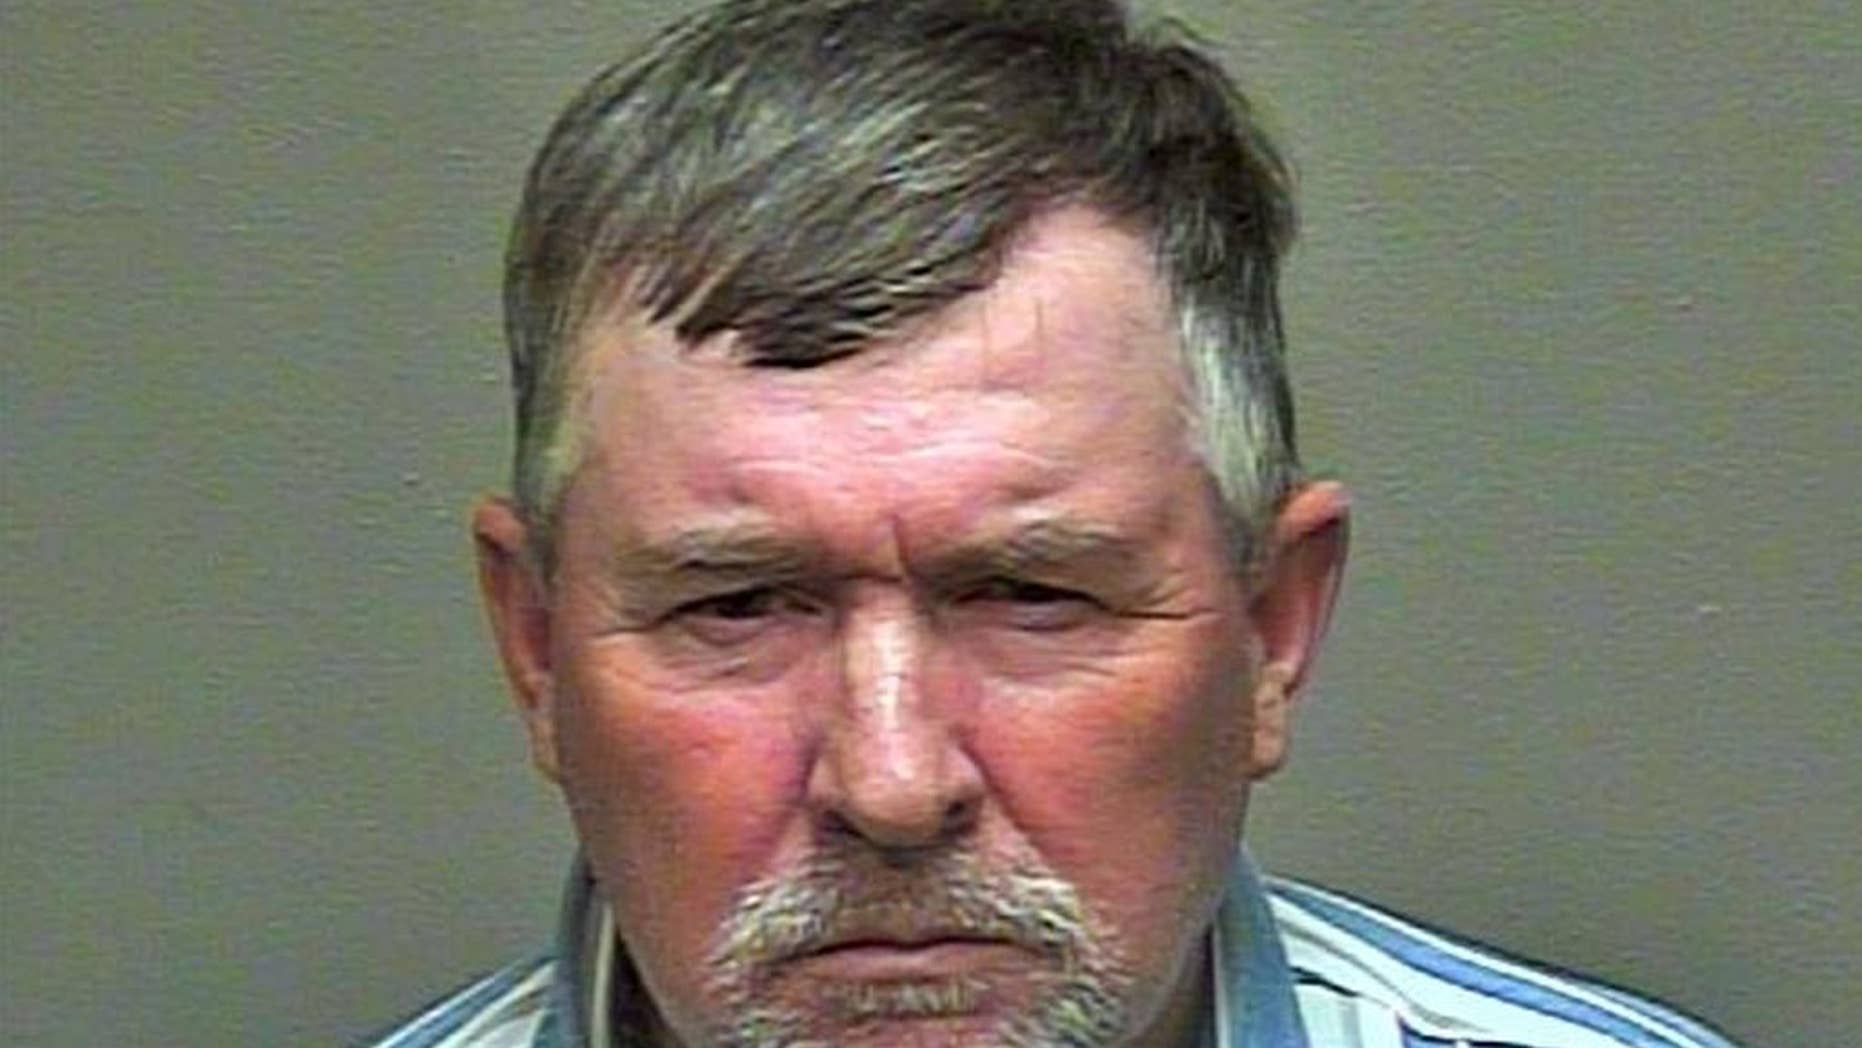 This undated photo provided by the Oklahoma County Detention Center shows Keith Bain. Oklahoma City police said Bain attacked two nurses and a security guard at Deaconess Hospital on Oklahoma City's northwest side, shortly before midnight, Monday, Dec. 8, 2014. (AP Photo/Oklahoma County Detention Center)